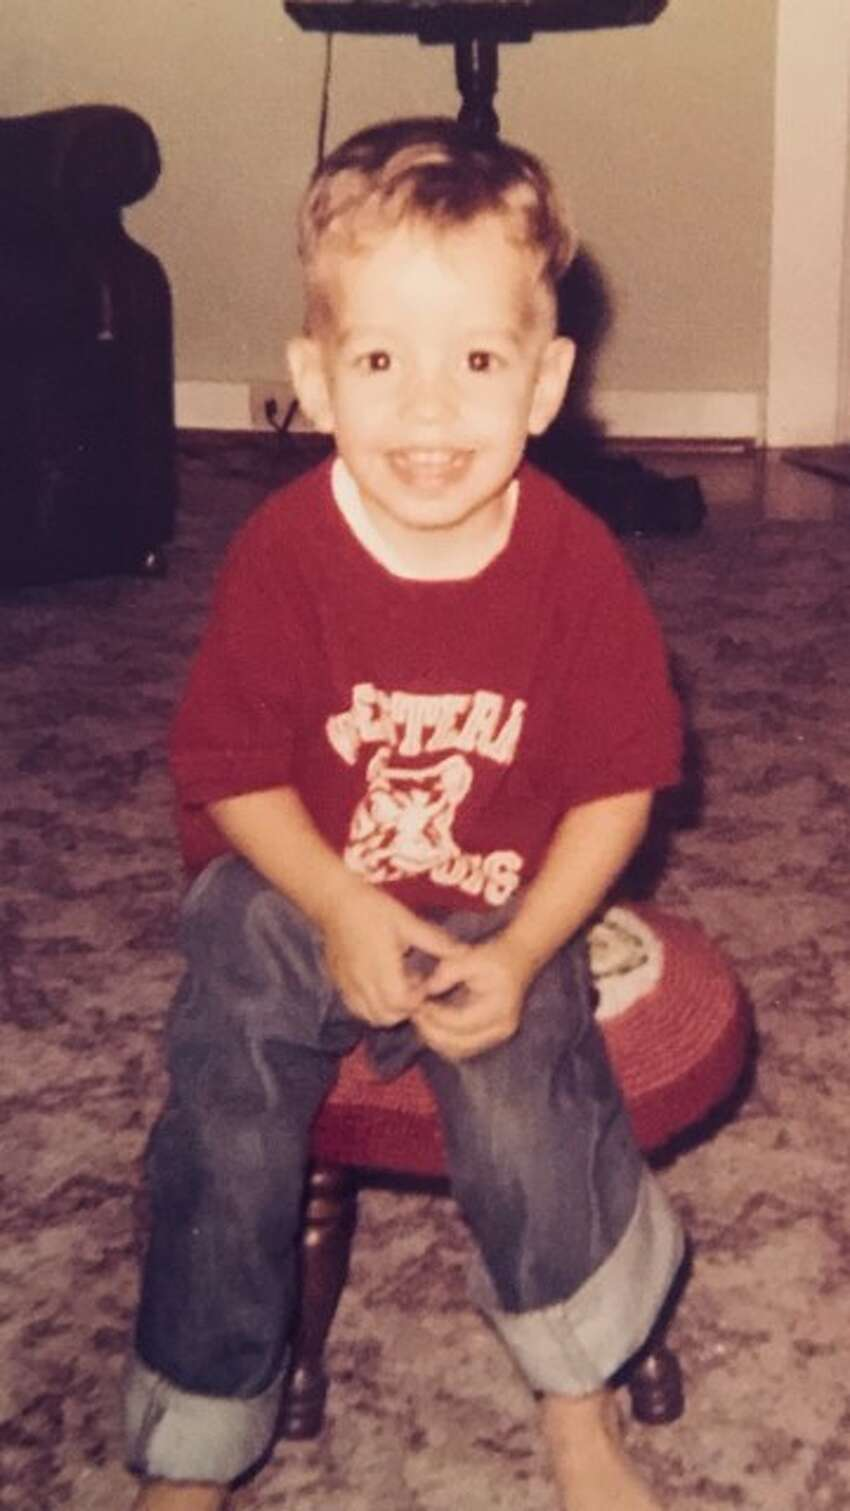 Wake up every morning to this smiling face when you turn on the TV. He was born to be in front of the camera. Can you guess who this is?